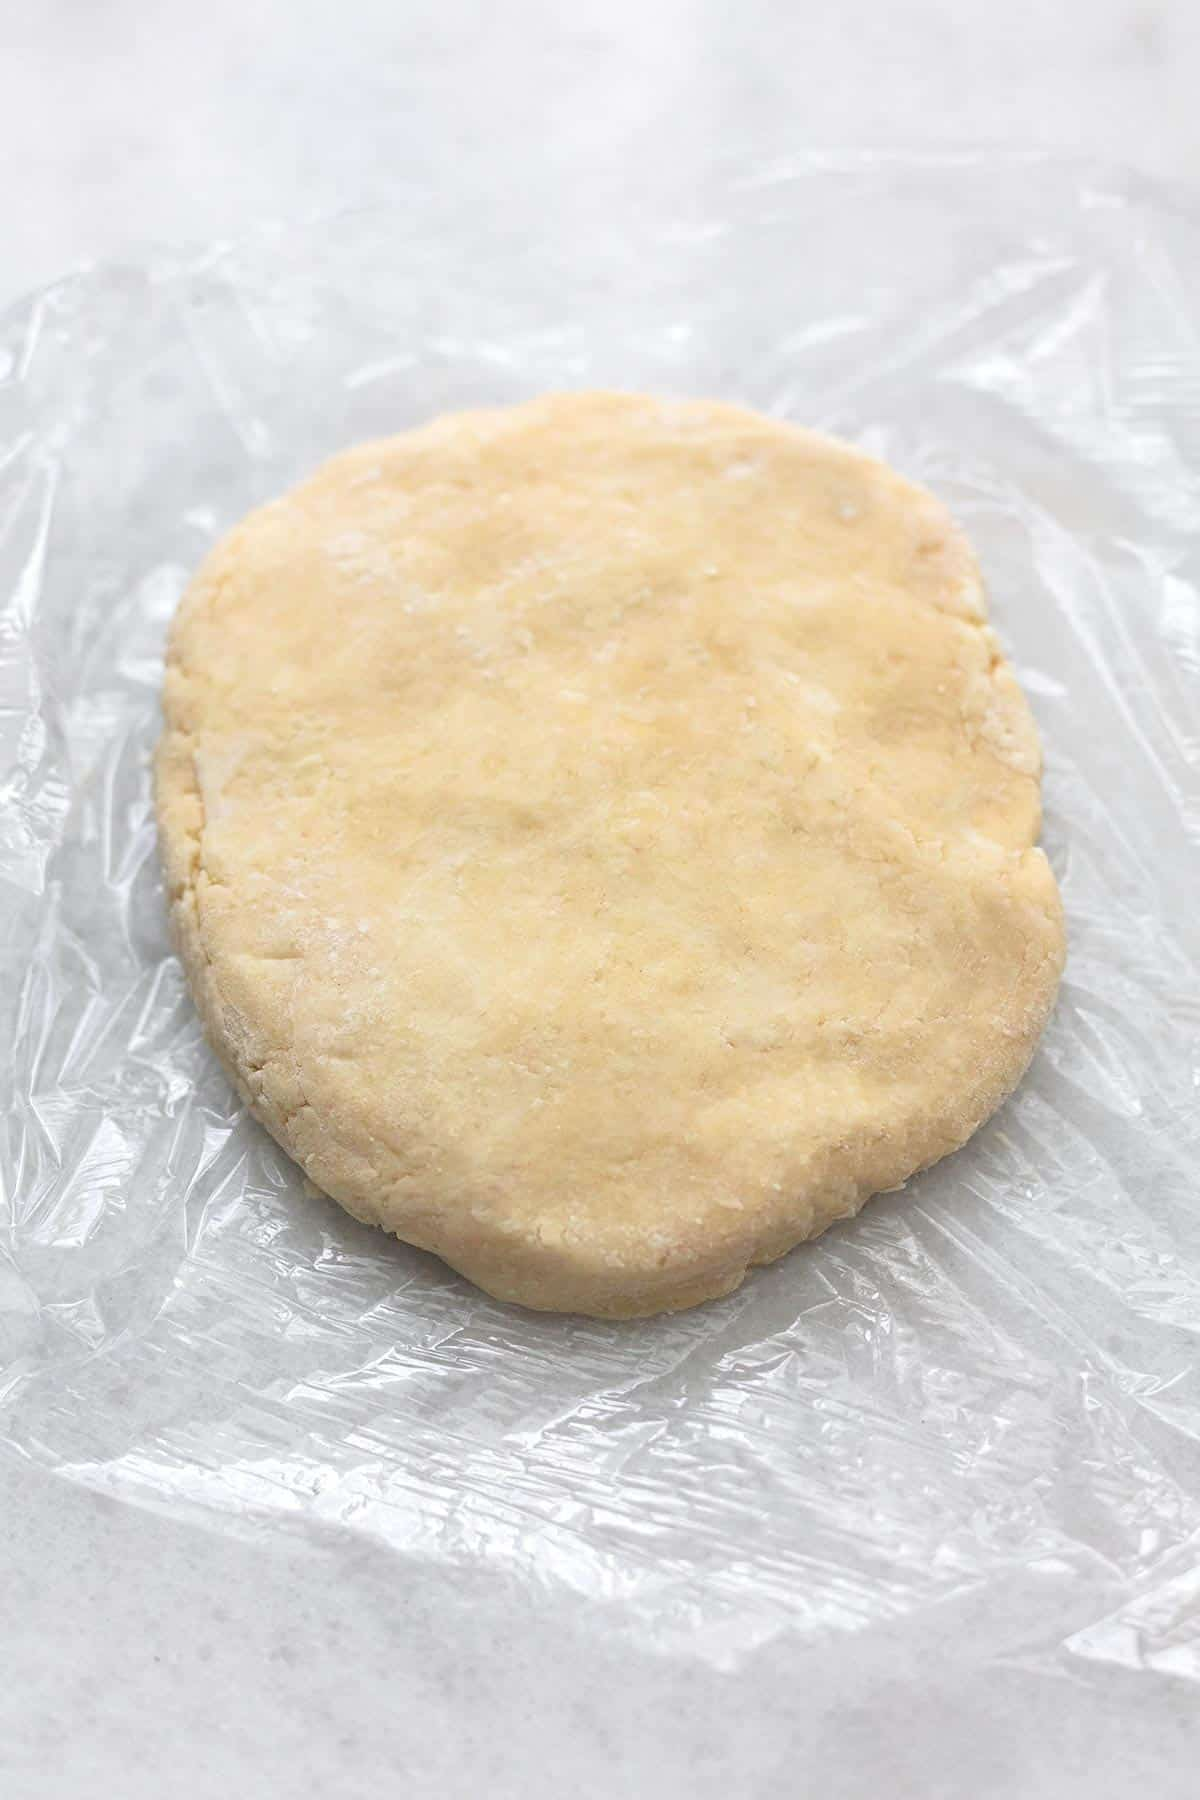 pie crust dough patted into a disc on plastic wrap.